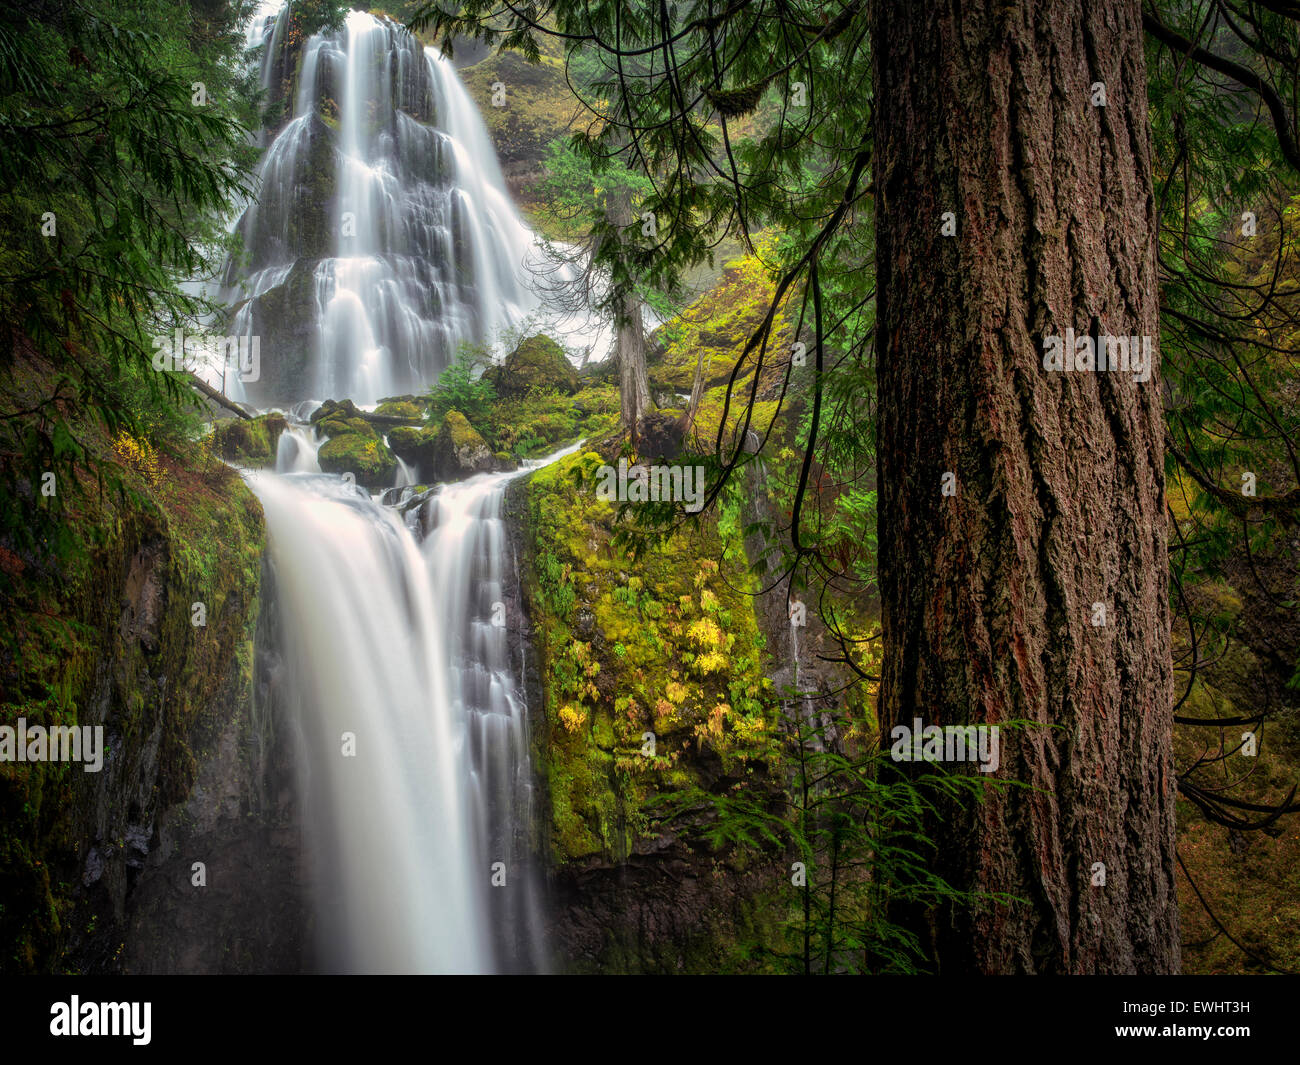 Falls Creek Falls, Washington. Photo Stock